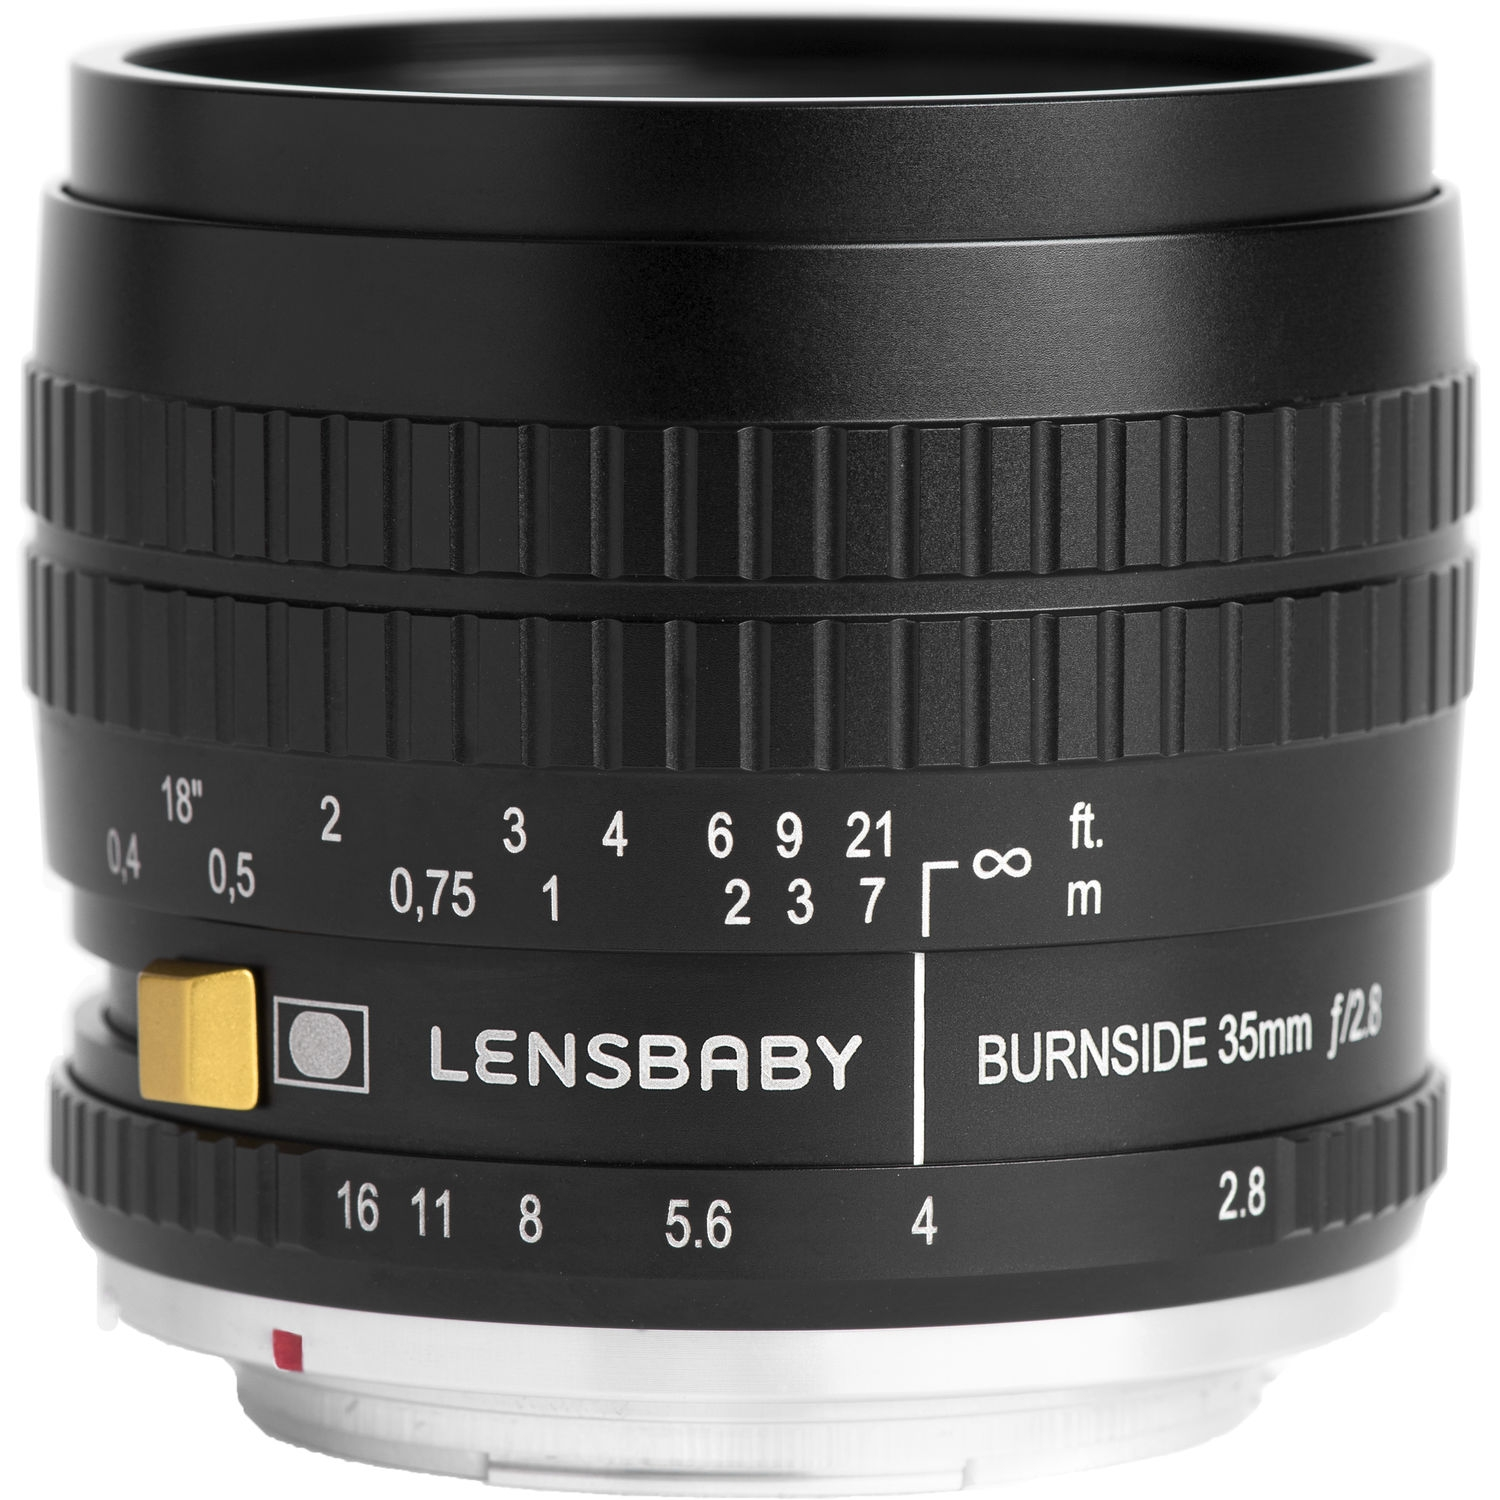 https://www.fotoskoda.cz/images/products/153201/lensbaby-burnside-35-mm-f2-8-1.jpg